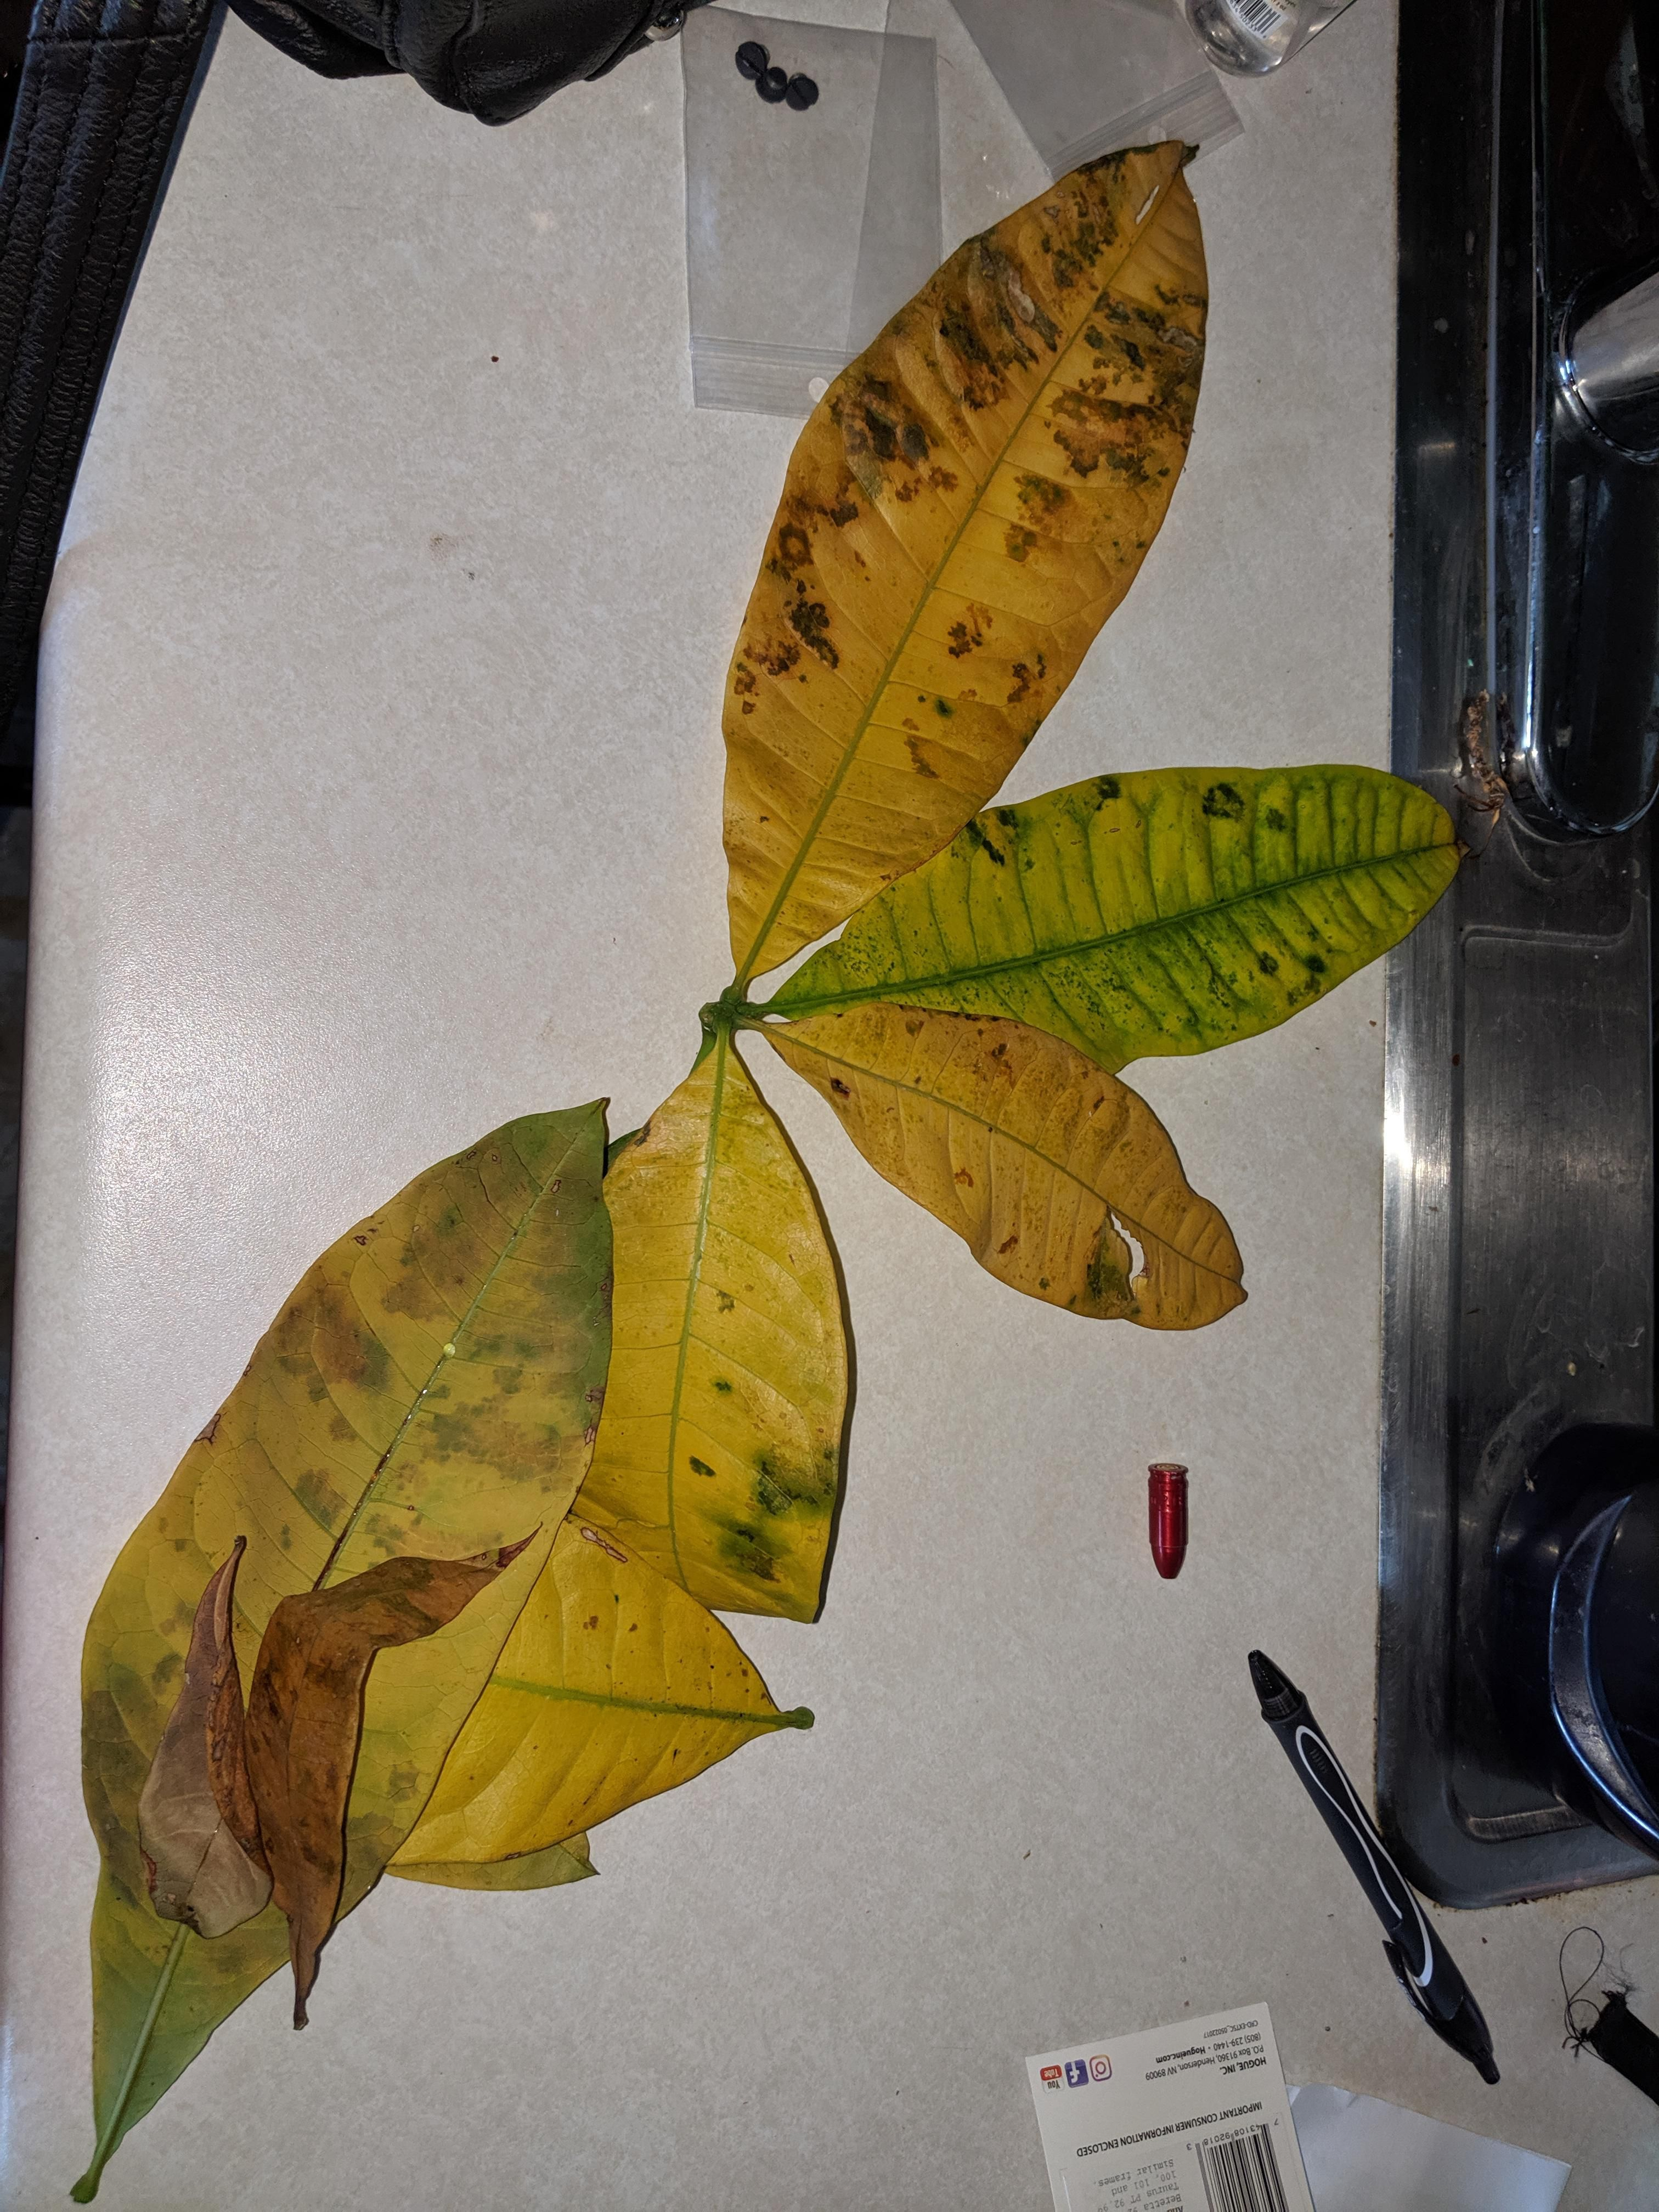 Money Tree Leaves Turning Yellow And Falling Off Why Is My Tree Sick Gardening Garden Diy H Plant Leaves Turning Yellow Plant Leaves Turning Plant Leaves